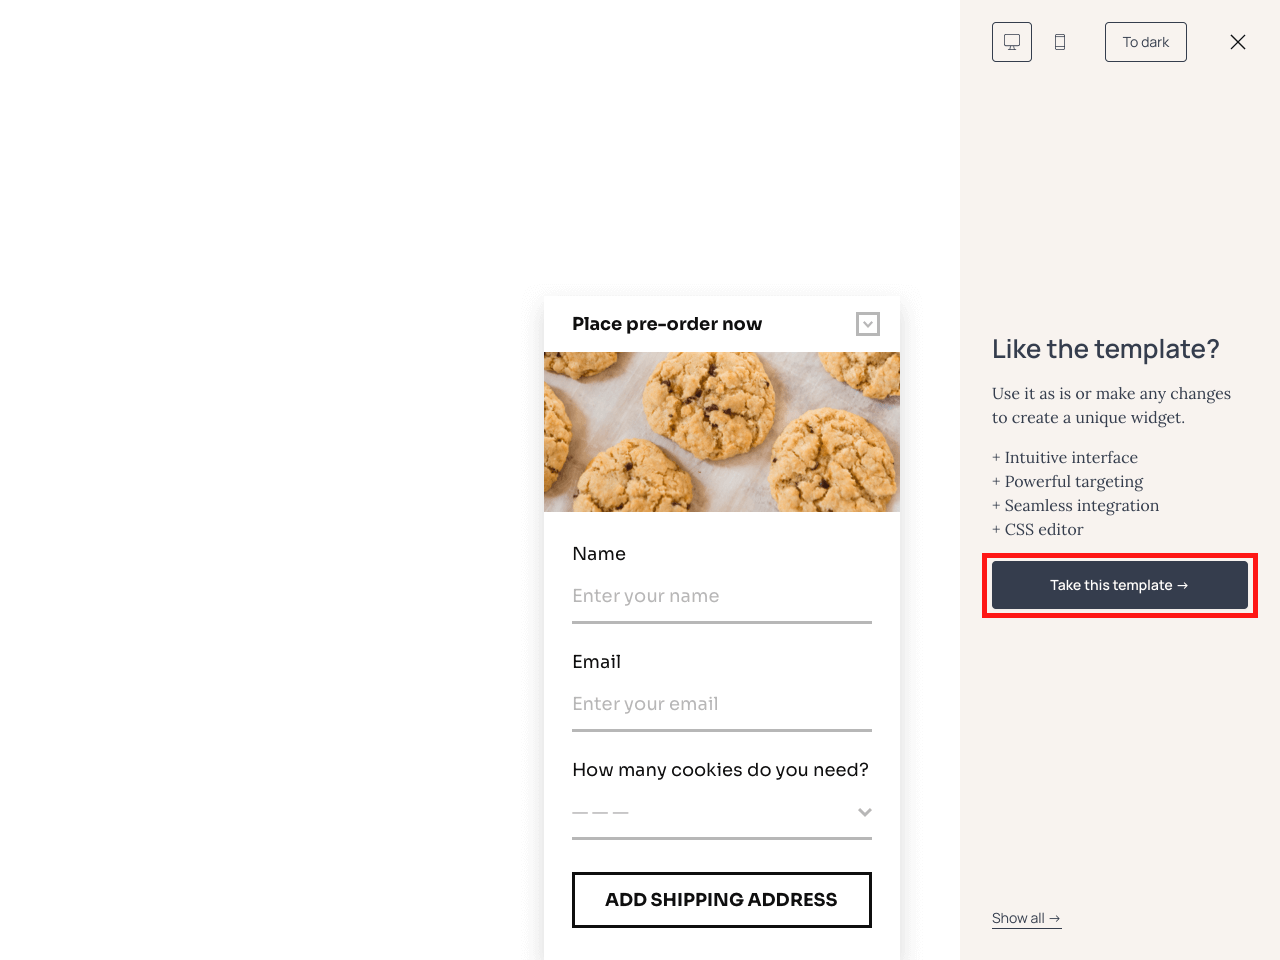 How to edit a pre-order form content using Getsitecontrol